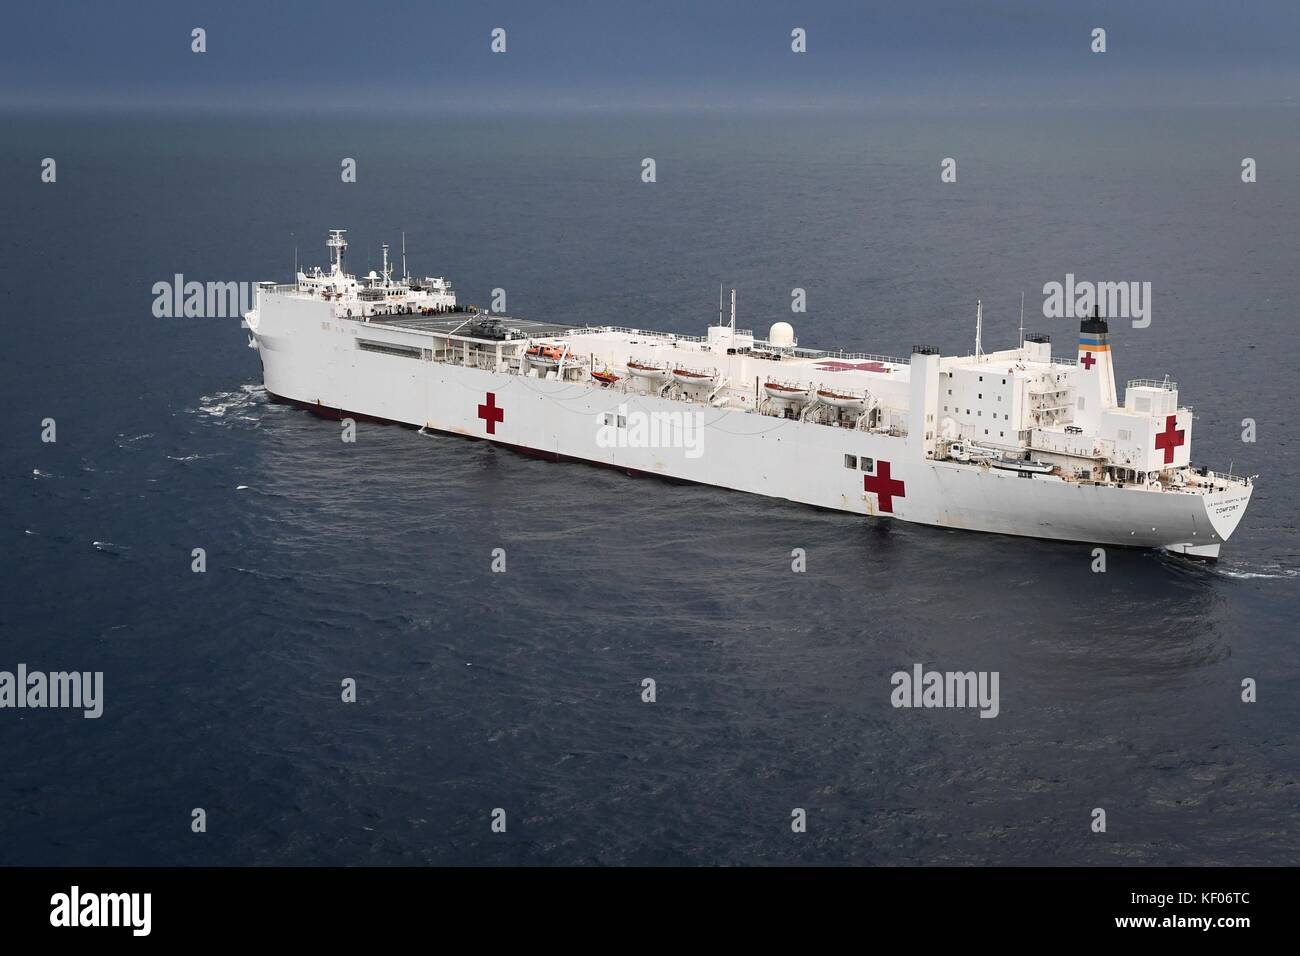 The U.S. Navy Mercy-class hospital ship USNS Comfort steams underway on the way to provide disaster relief support - Stock Image